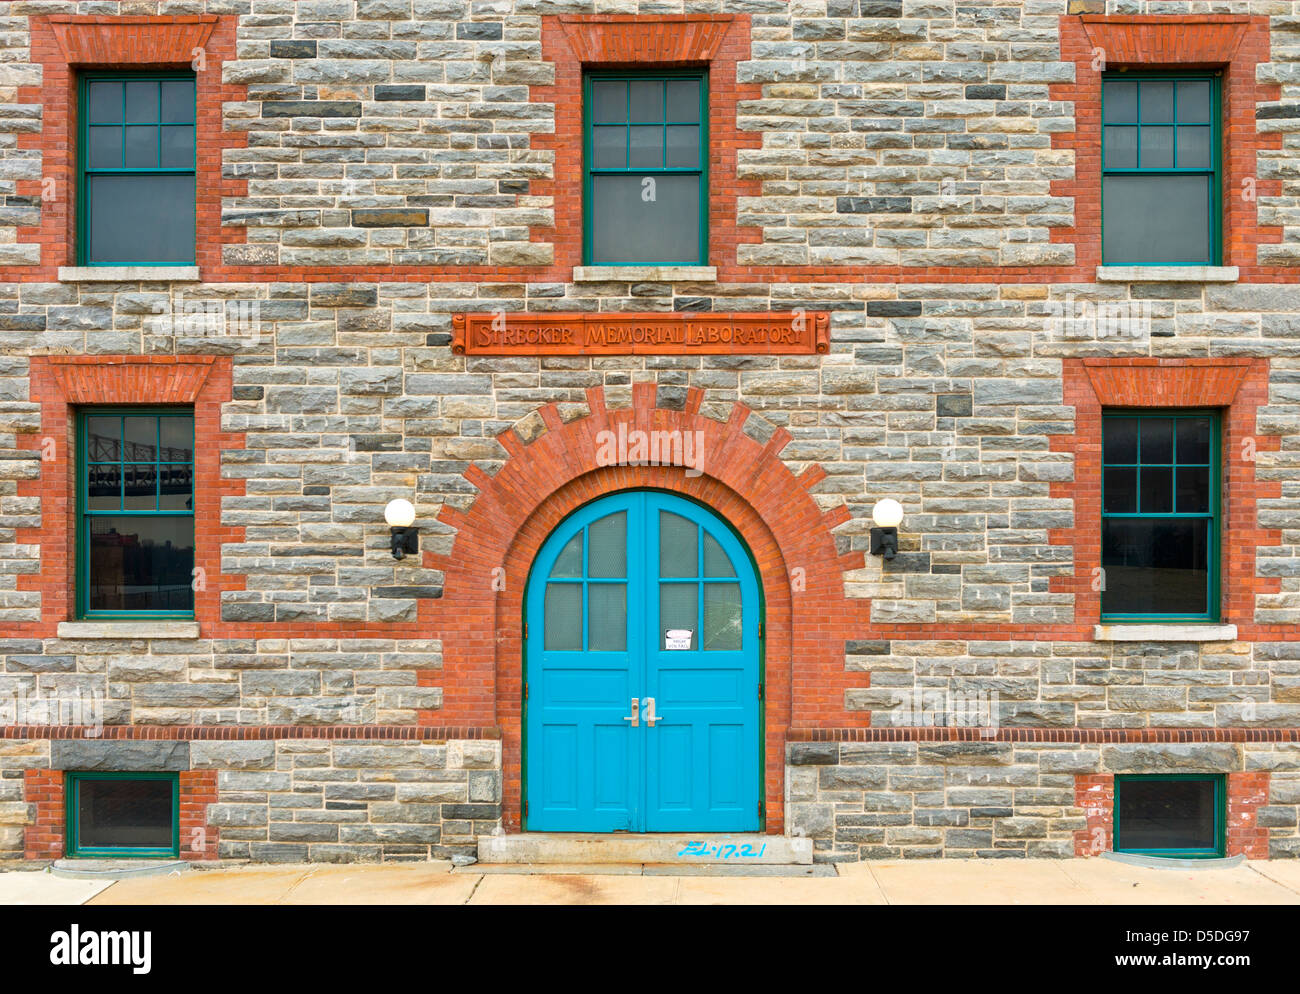 Strecker Memorial Laboratory (1892), Southpoint Park,  Roosevelt Island, New York.  Now a power conversion substation. - Stock Image